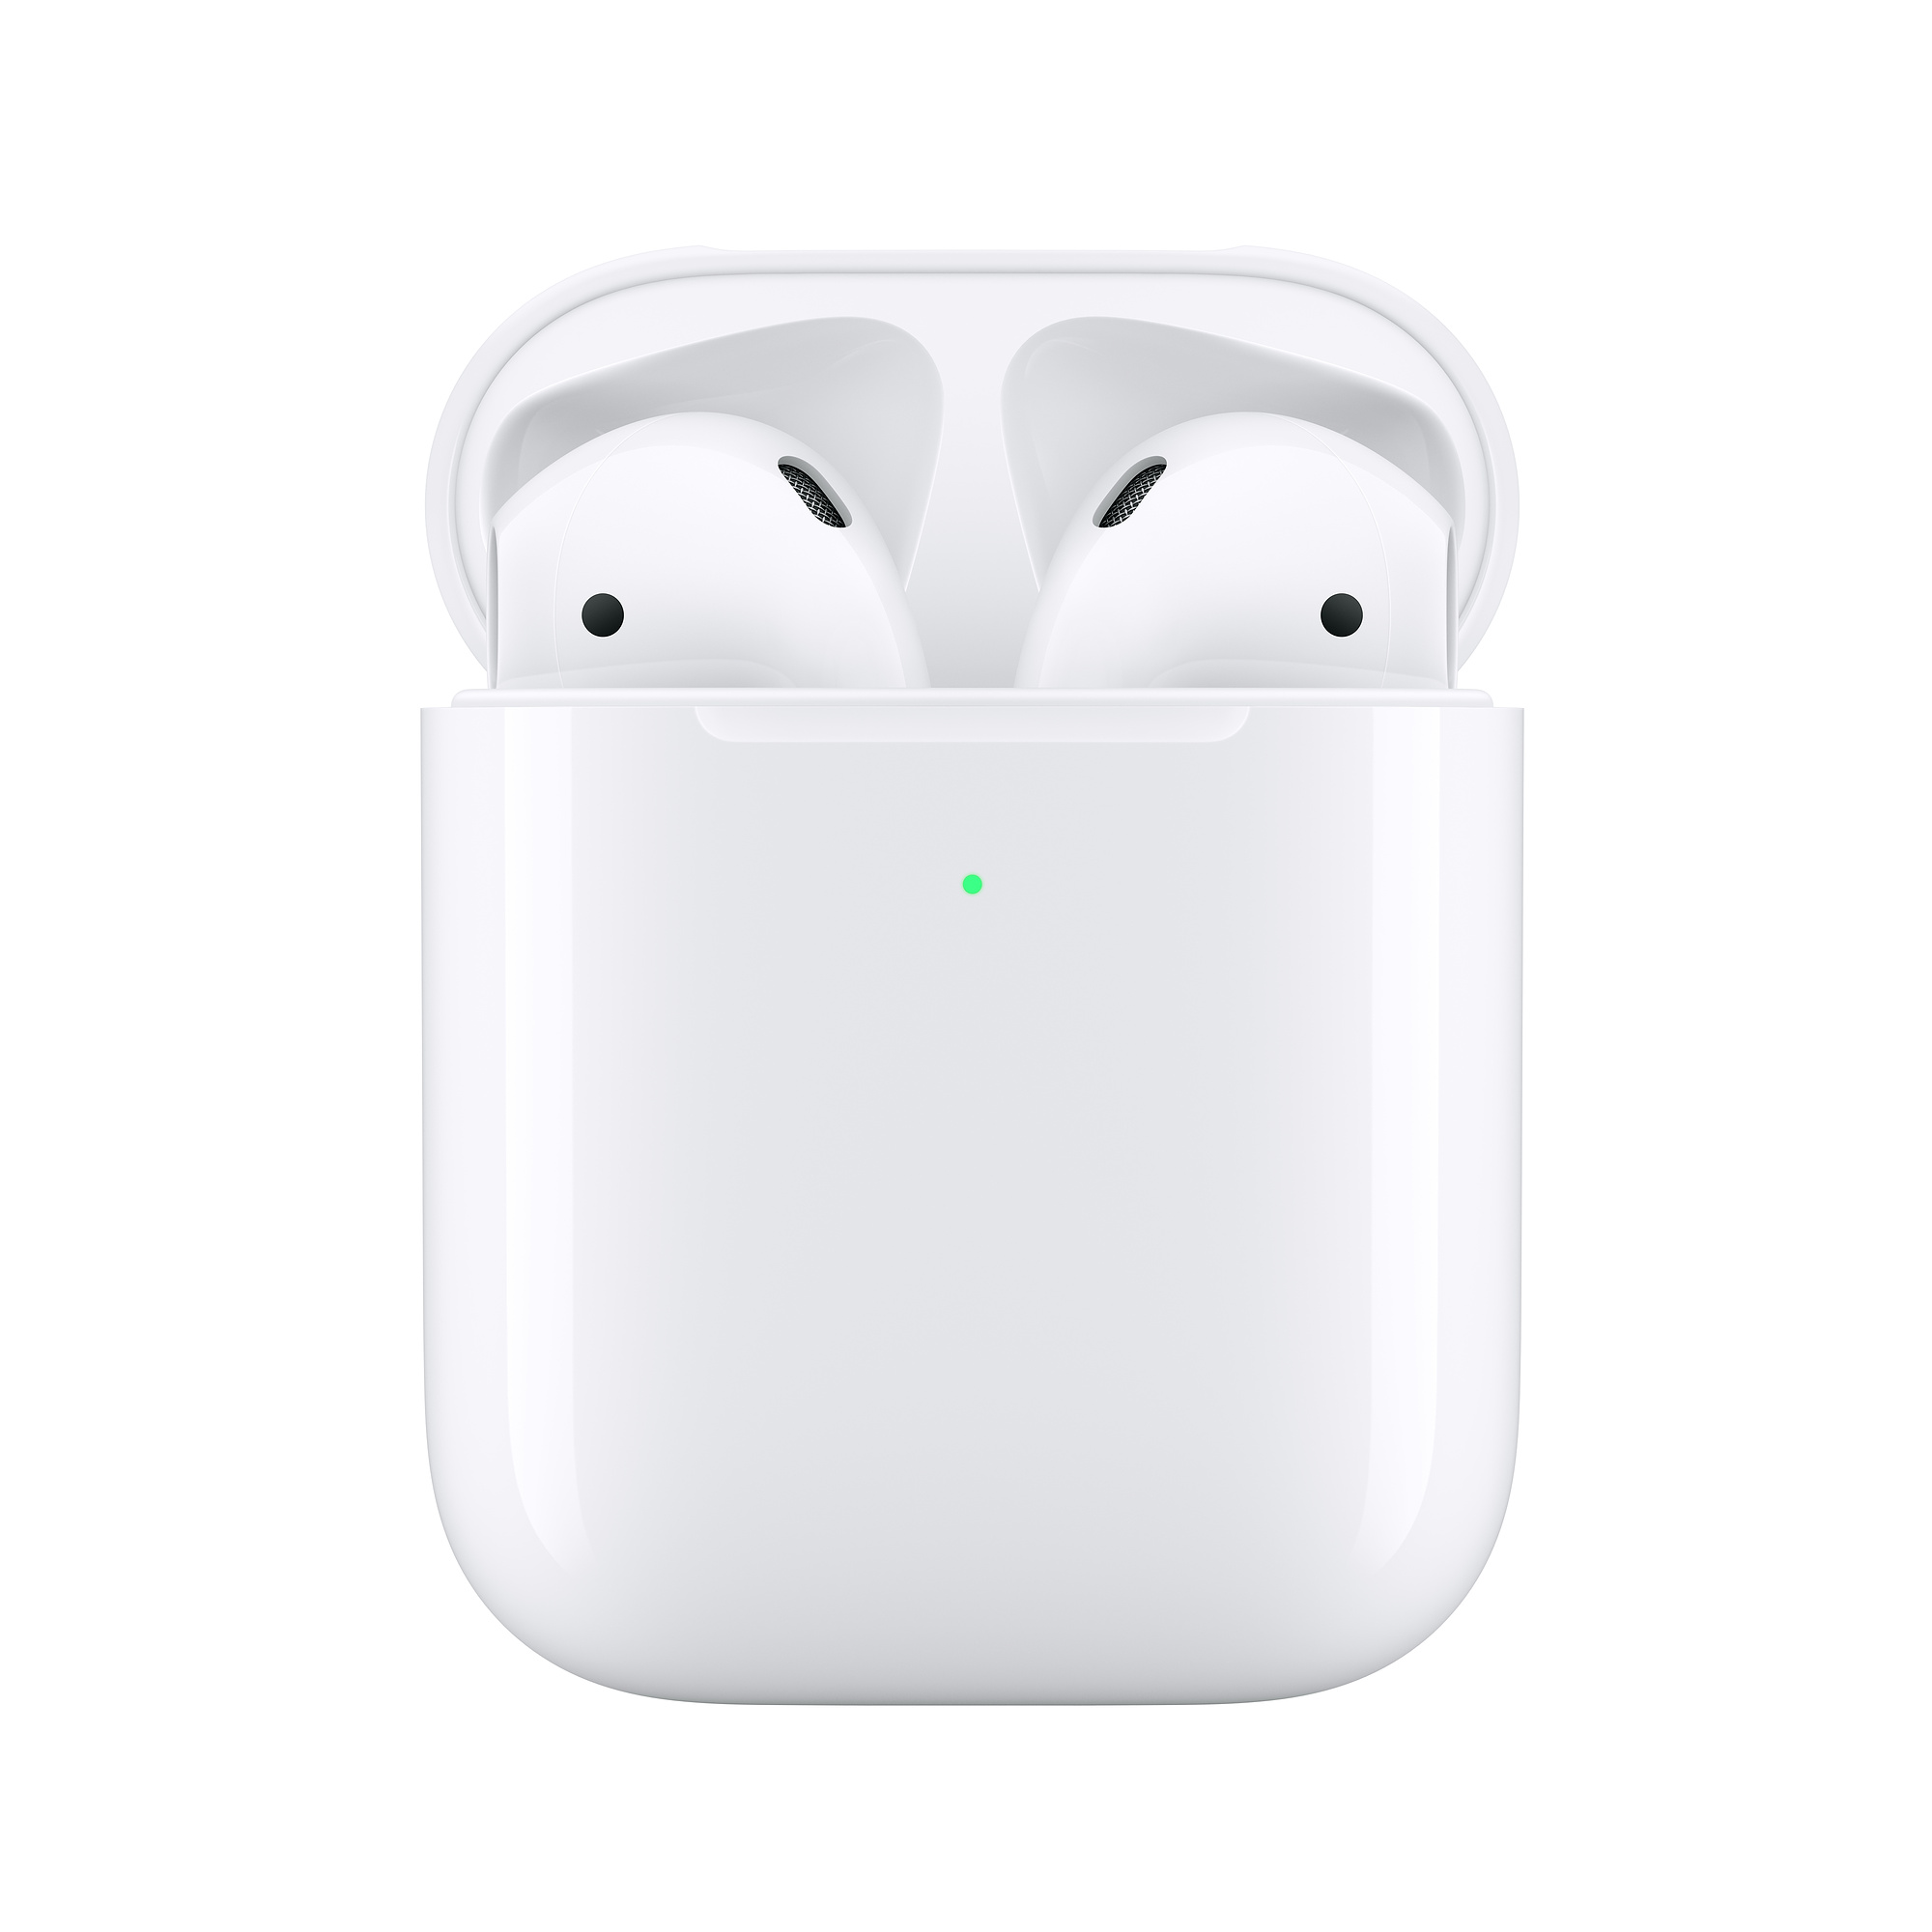 Apple_Airpods_-2_Wireless_MRXJ2J.1554551739644_412677.jpg